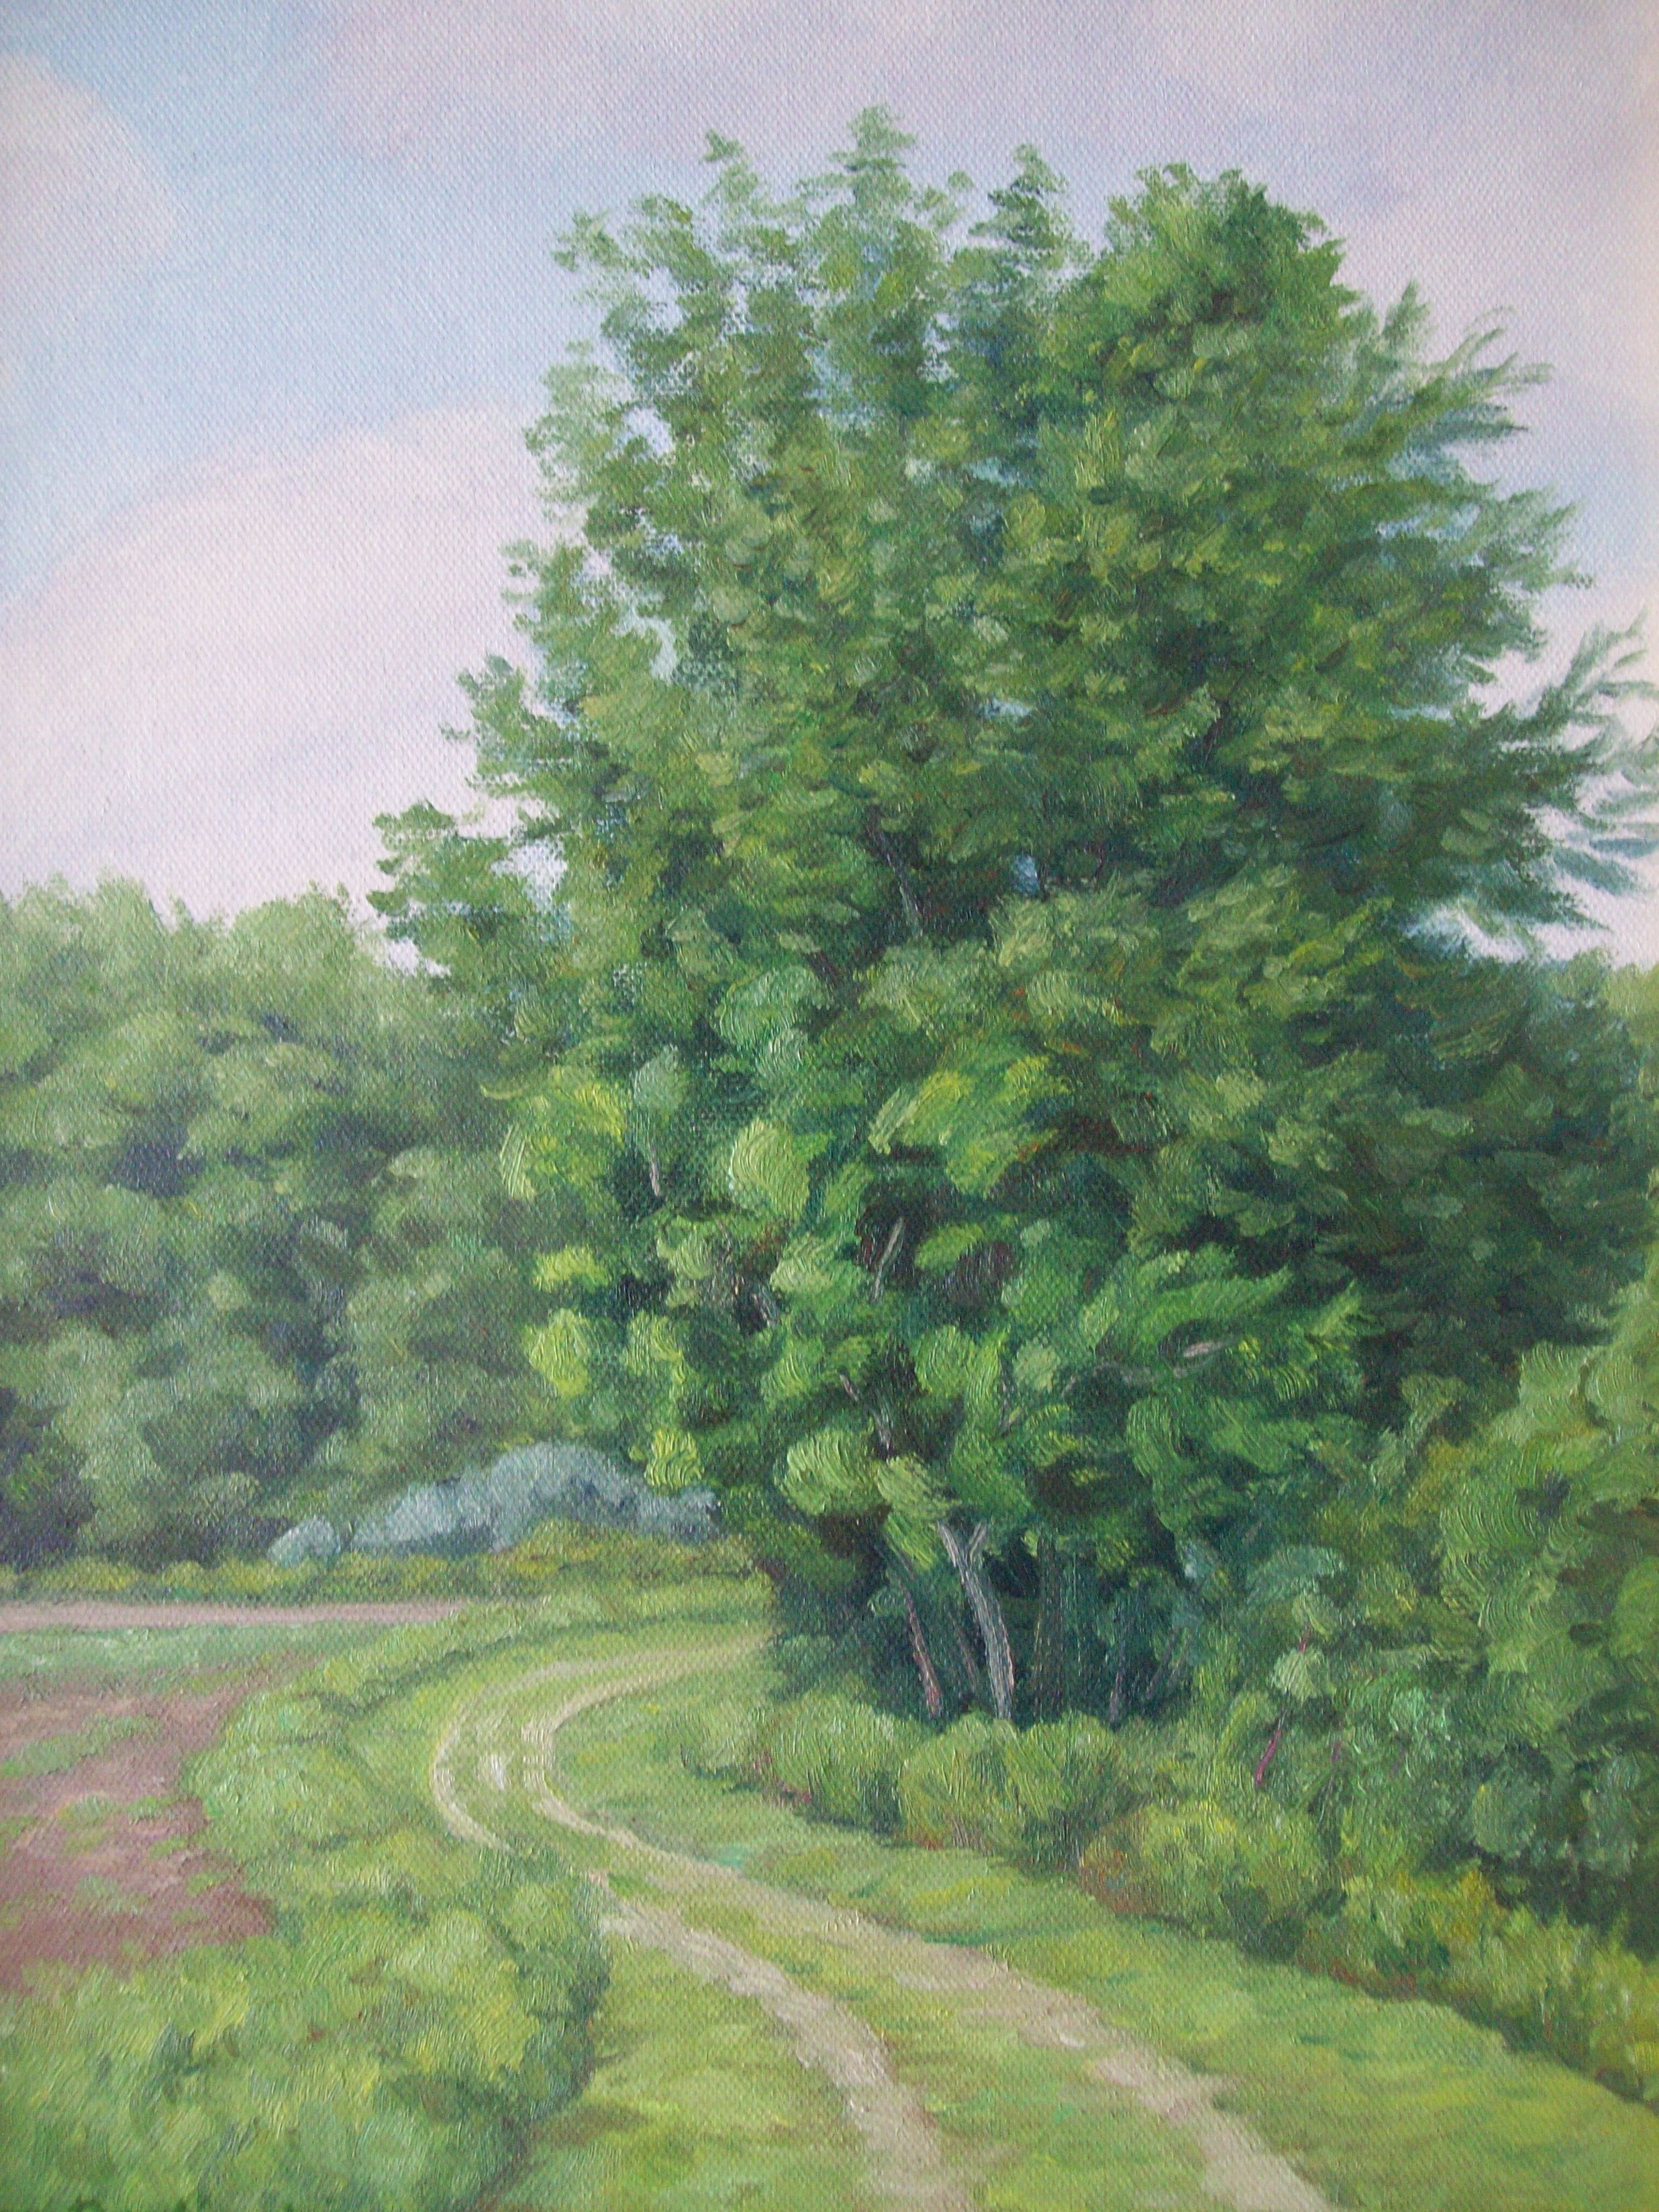 A painting of a tree next to dirt paths